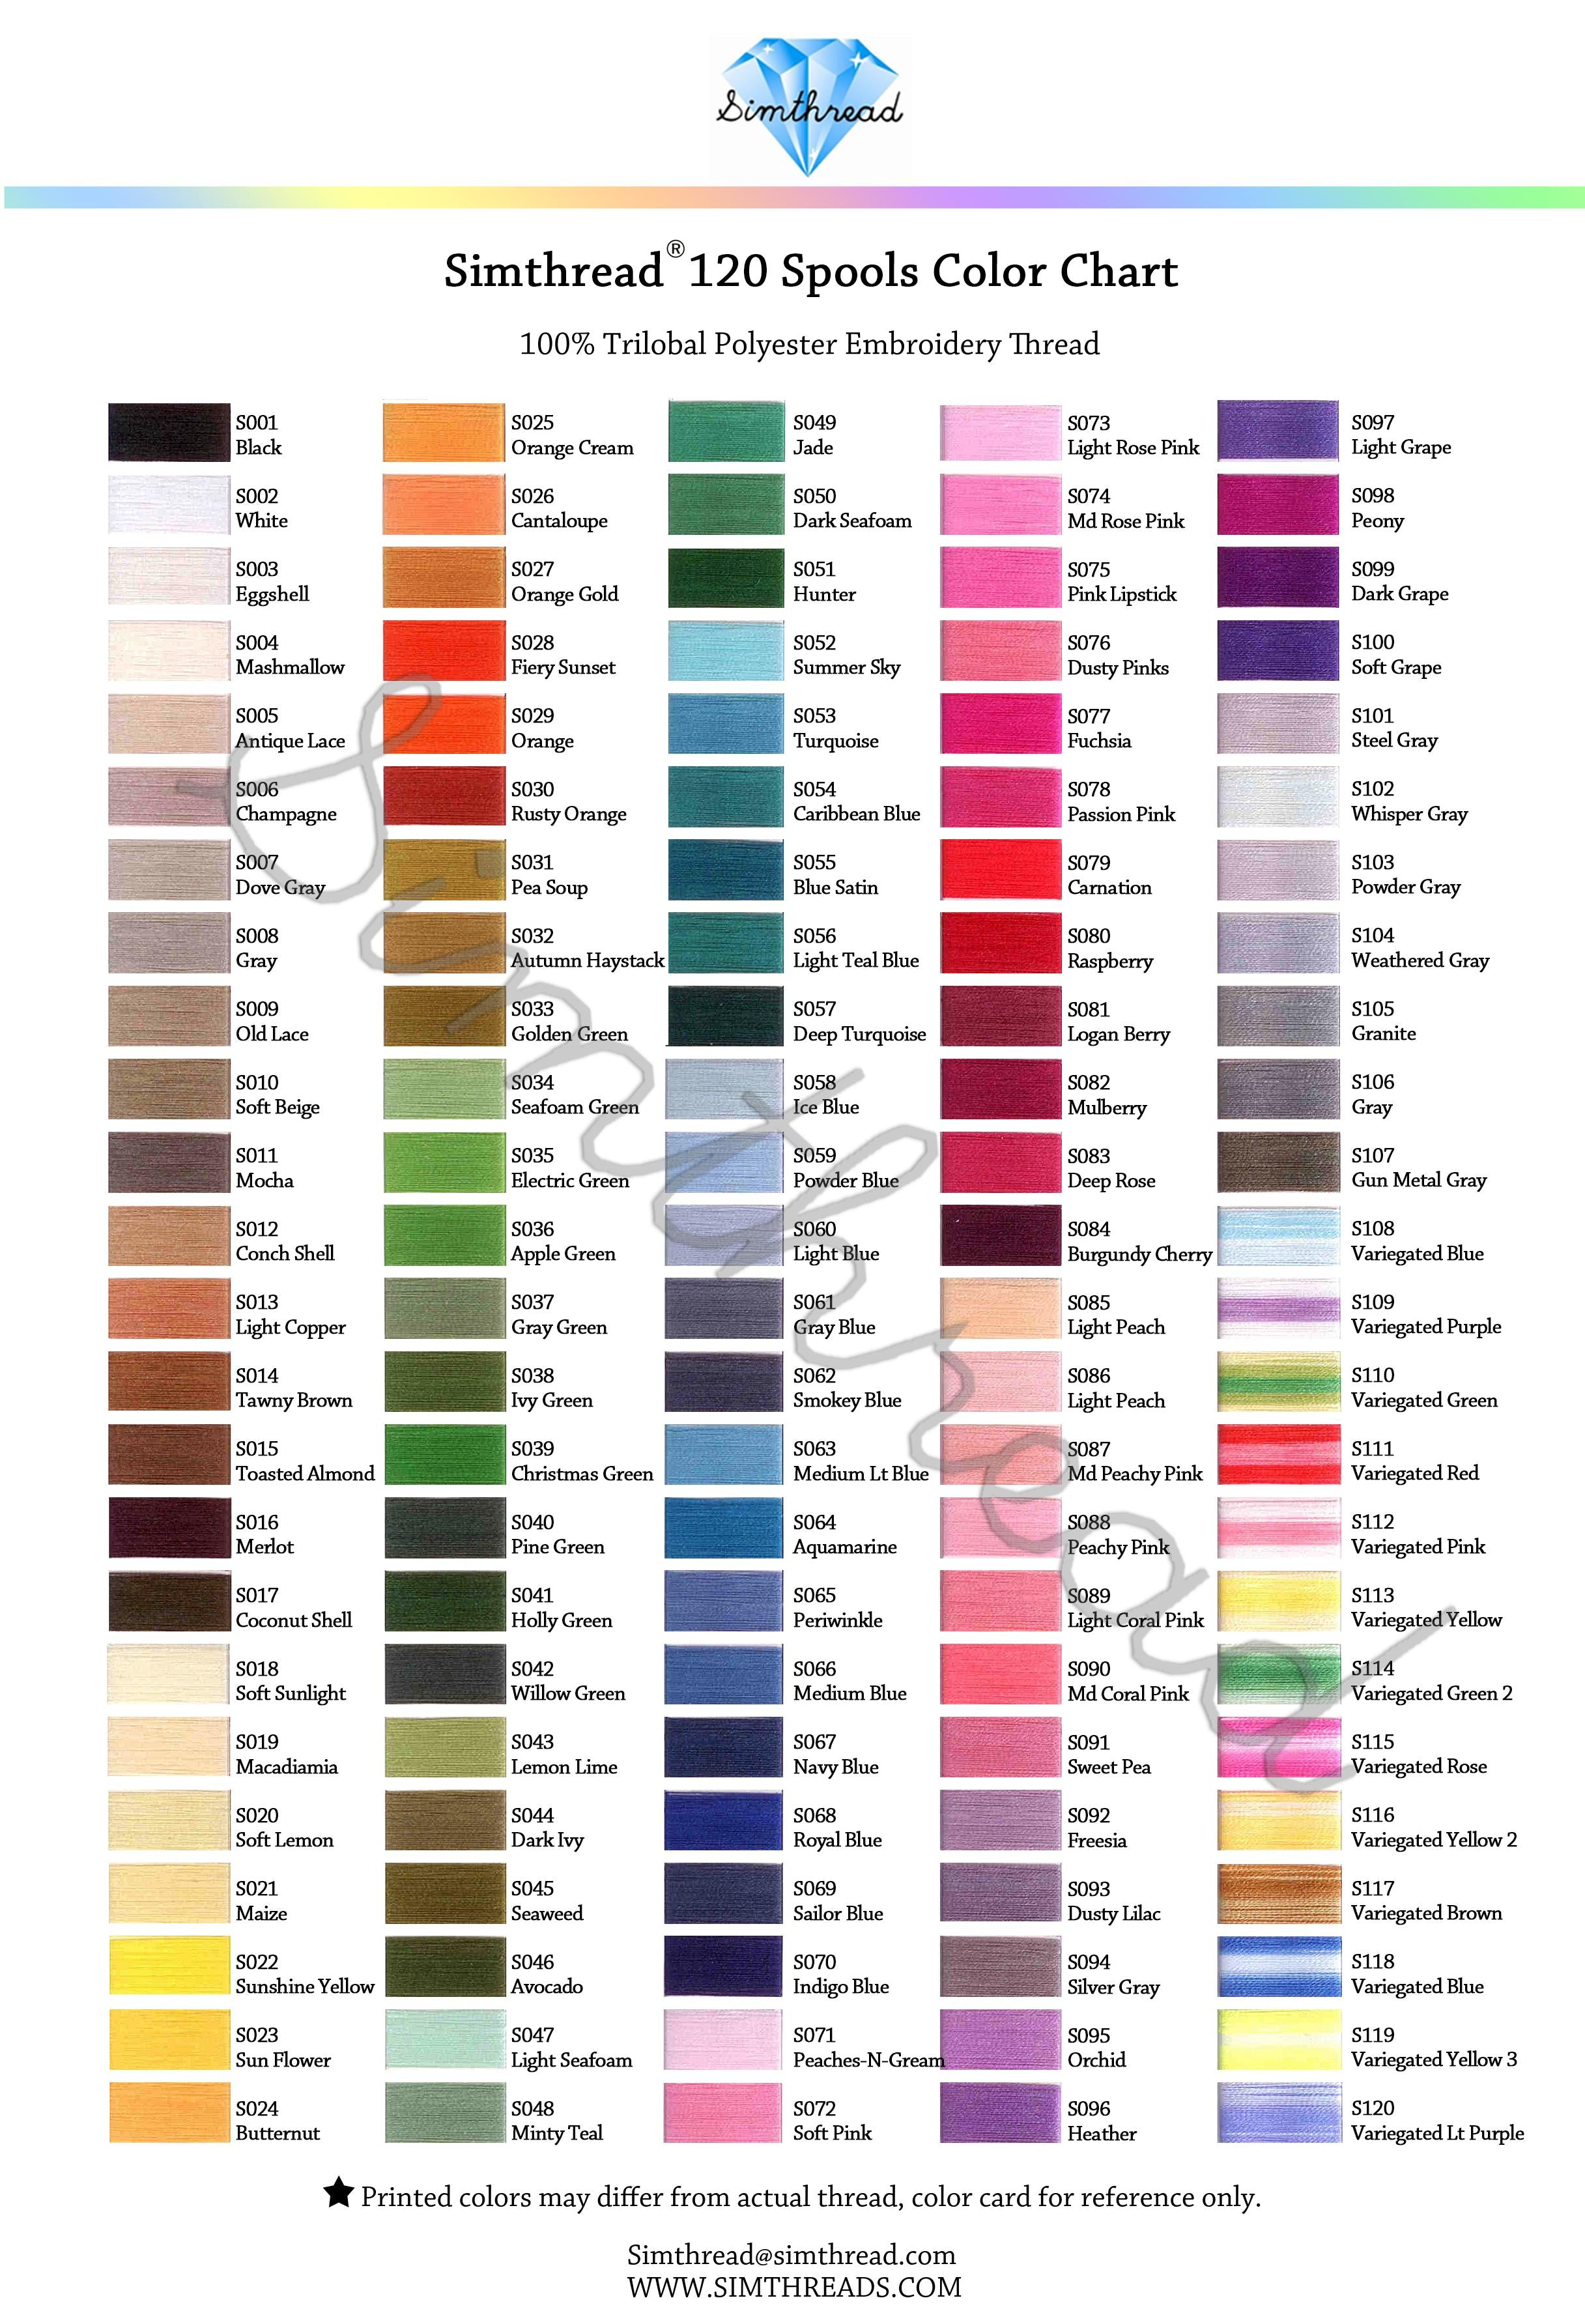 Simthread 120 color collection